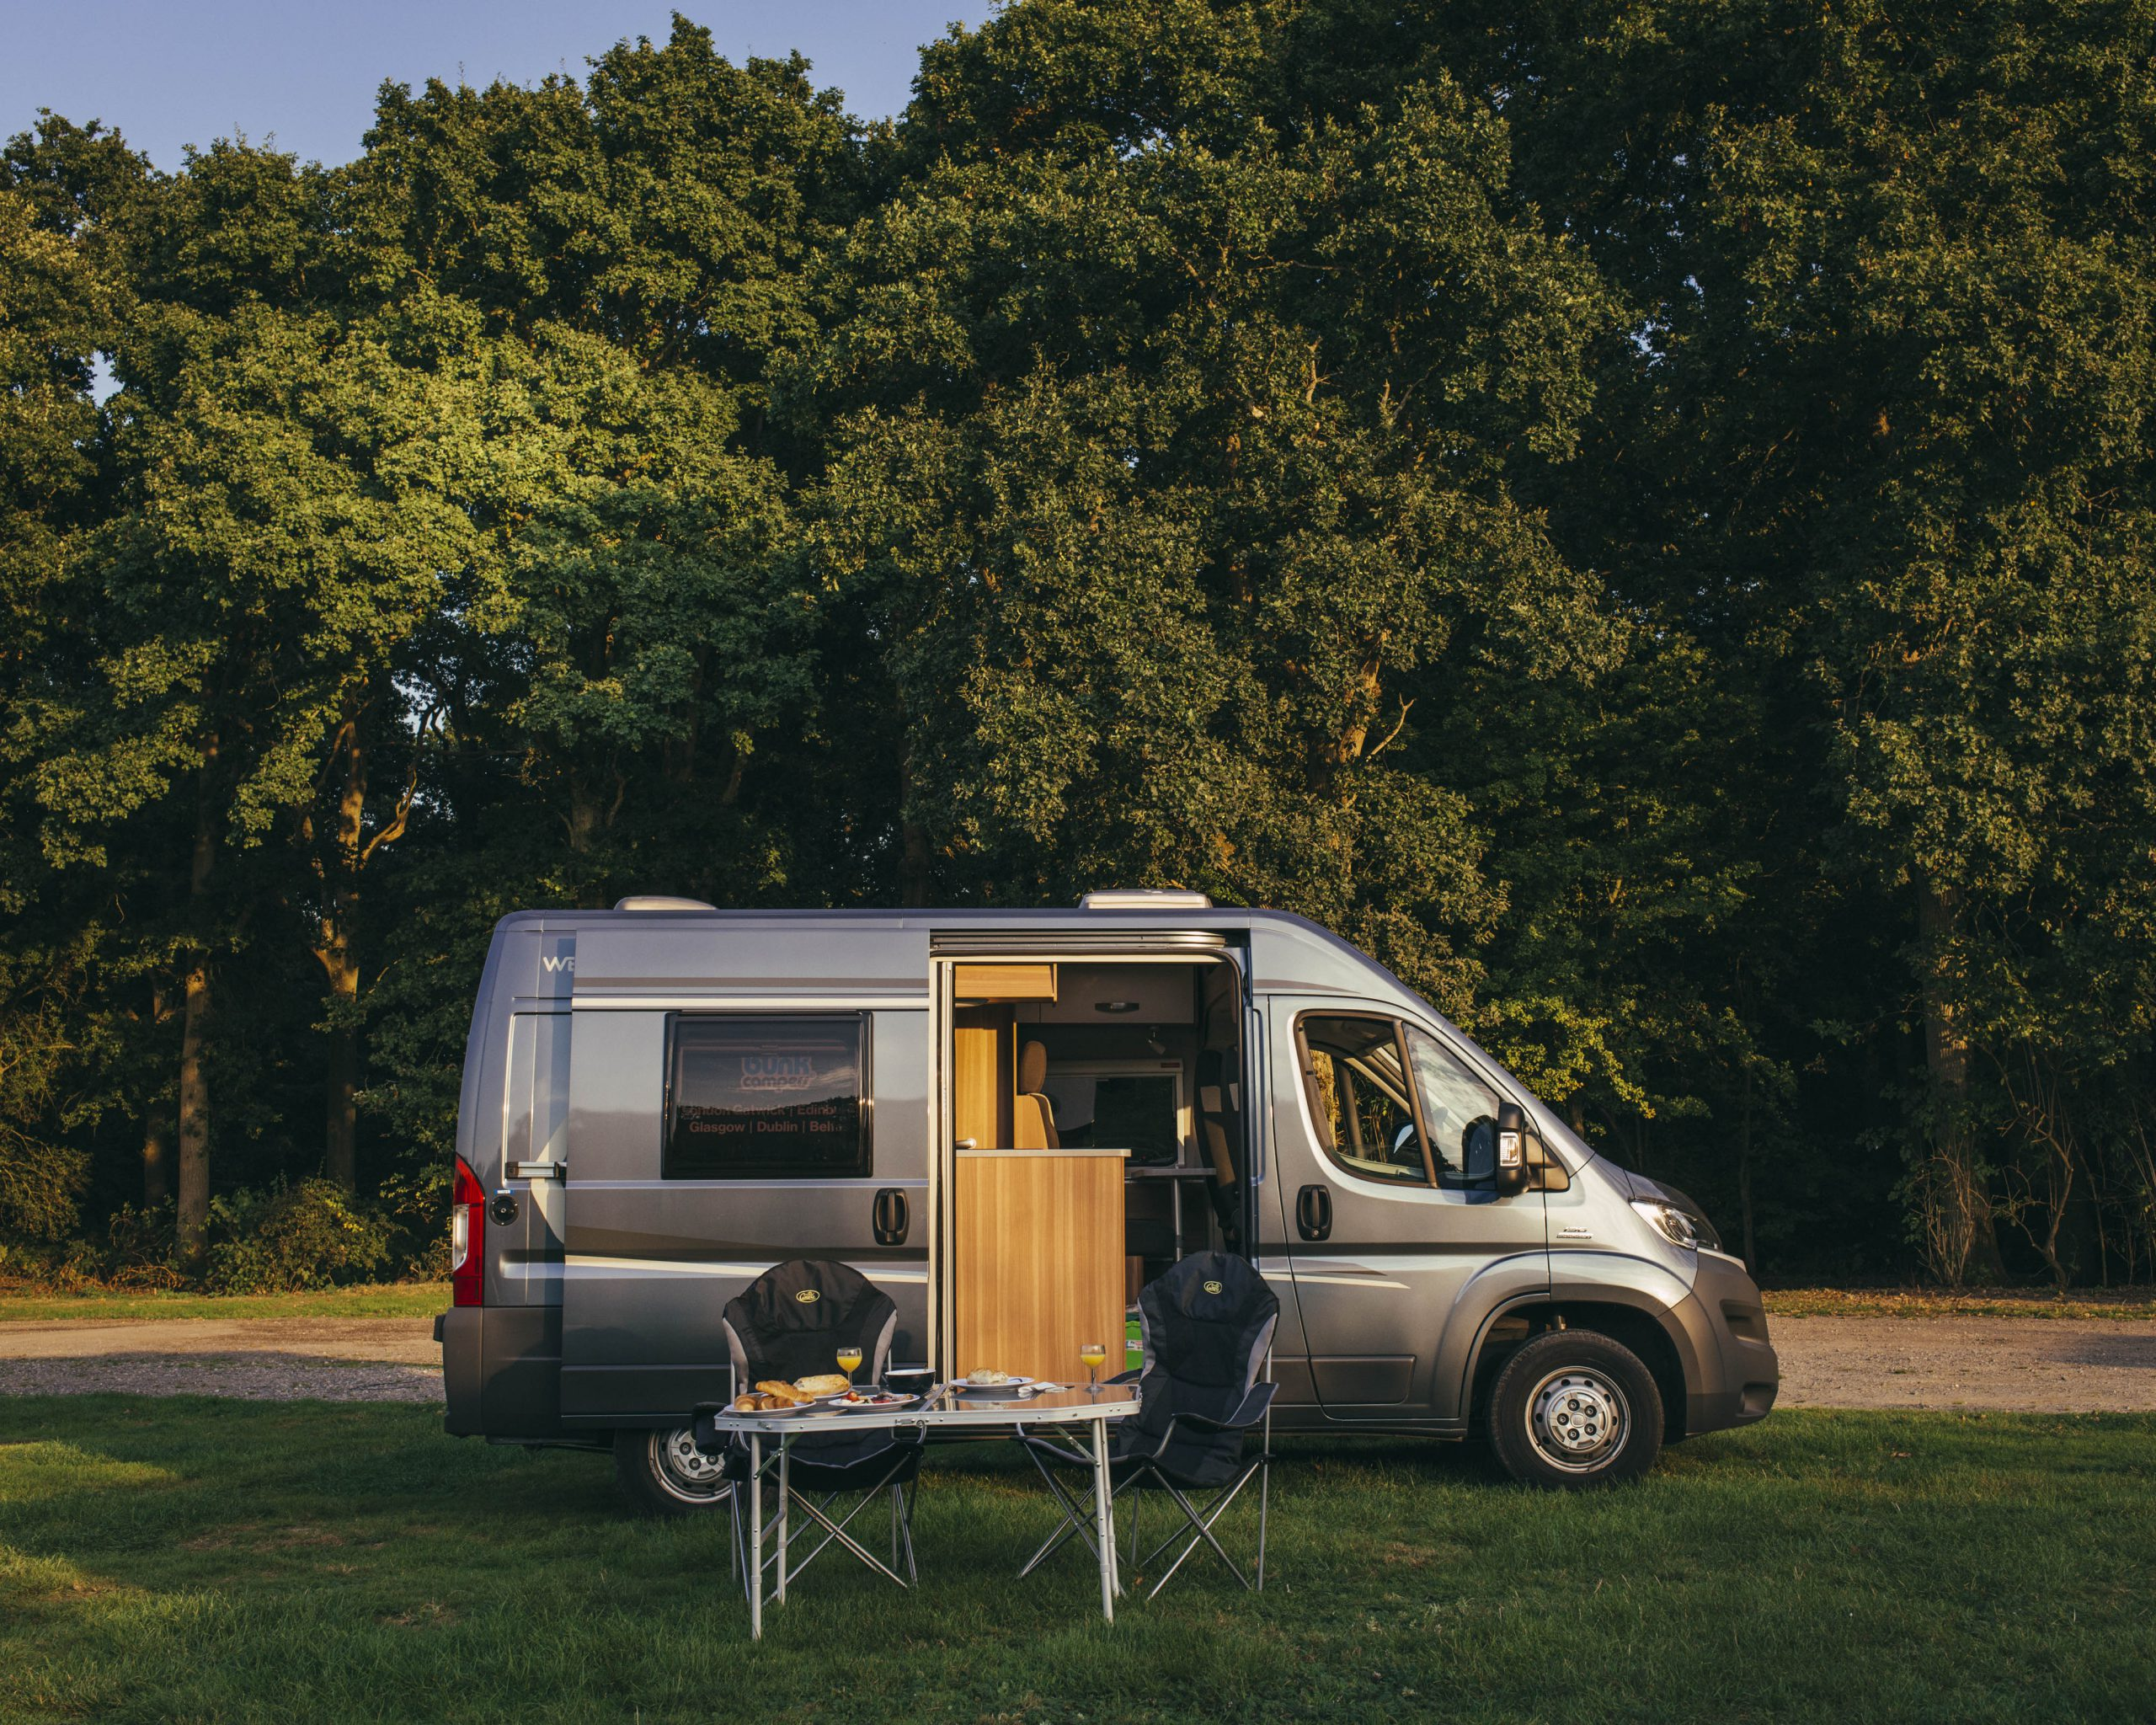 Camping in a motorhome during sunset